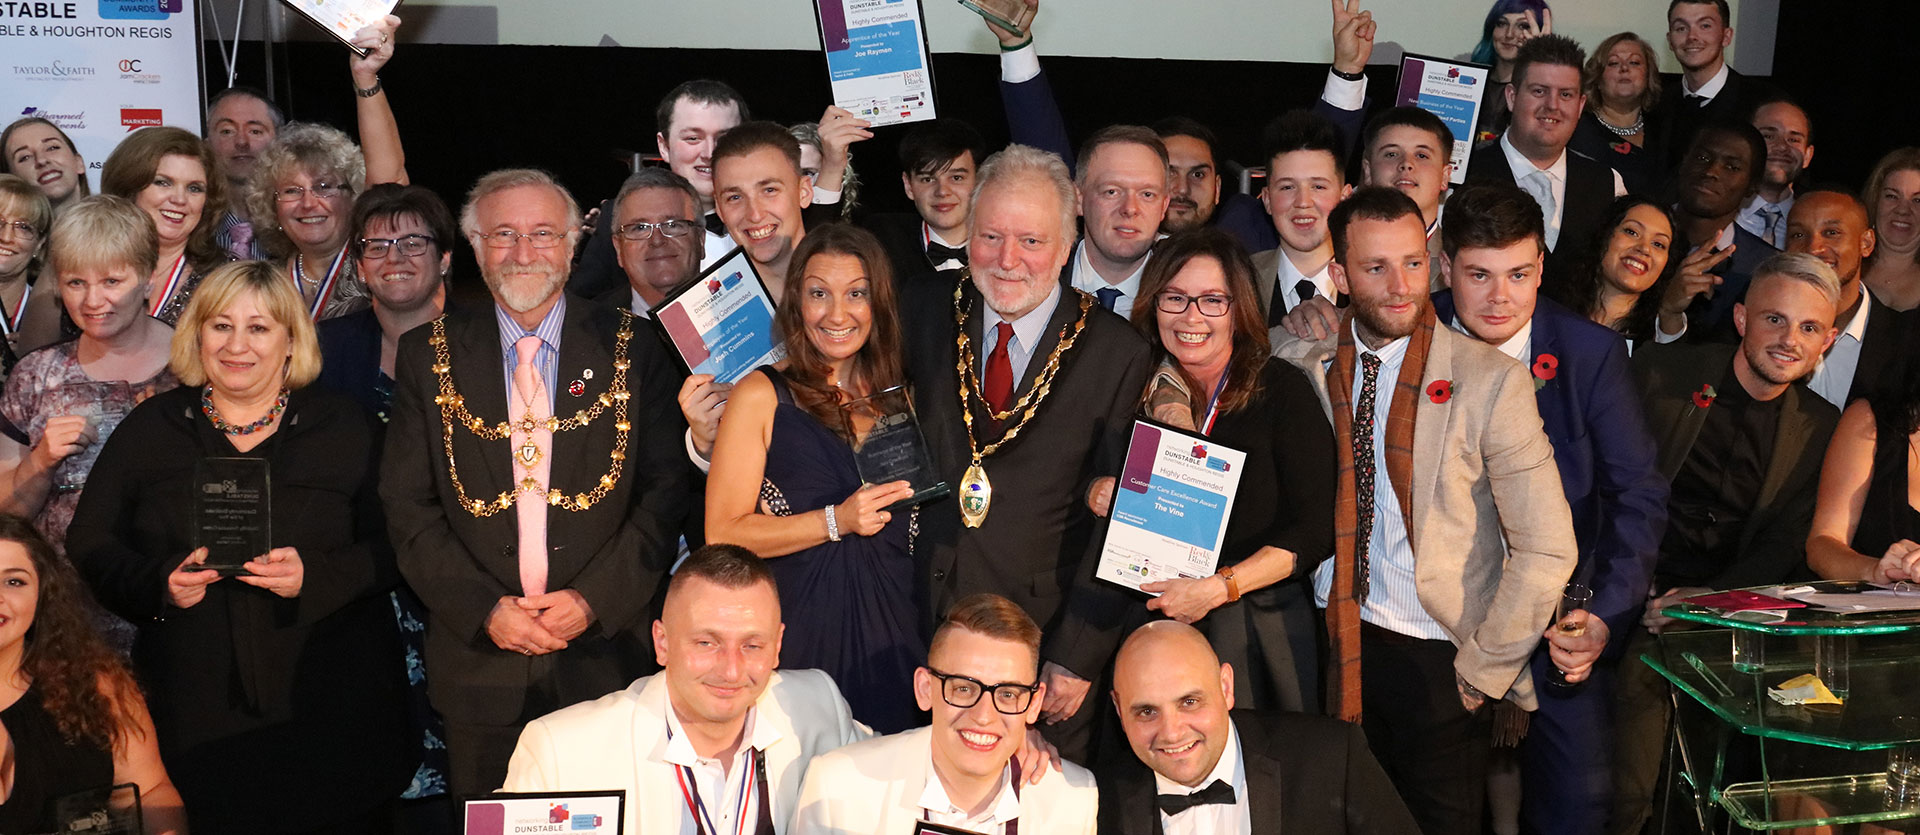 Dunstable & Houghton Regis Business and Community Awards